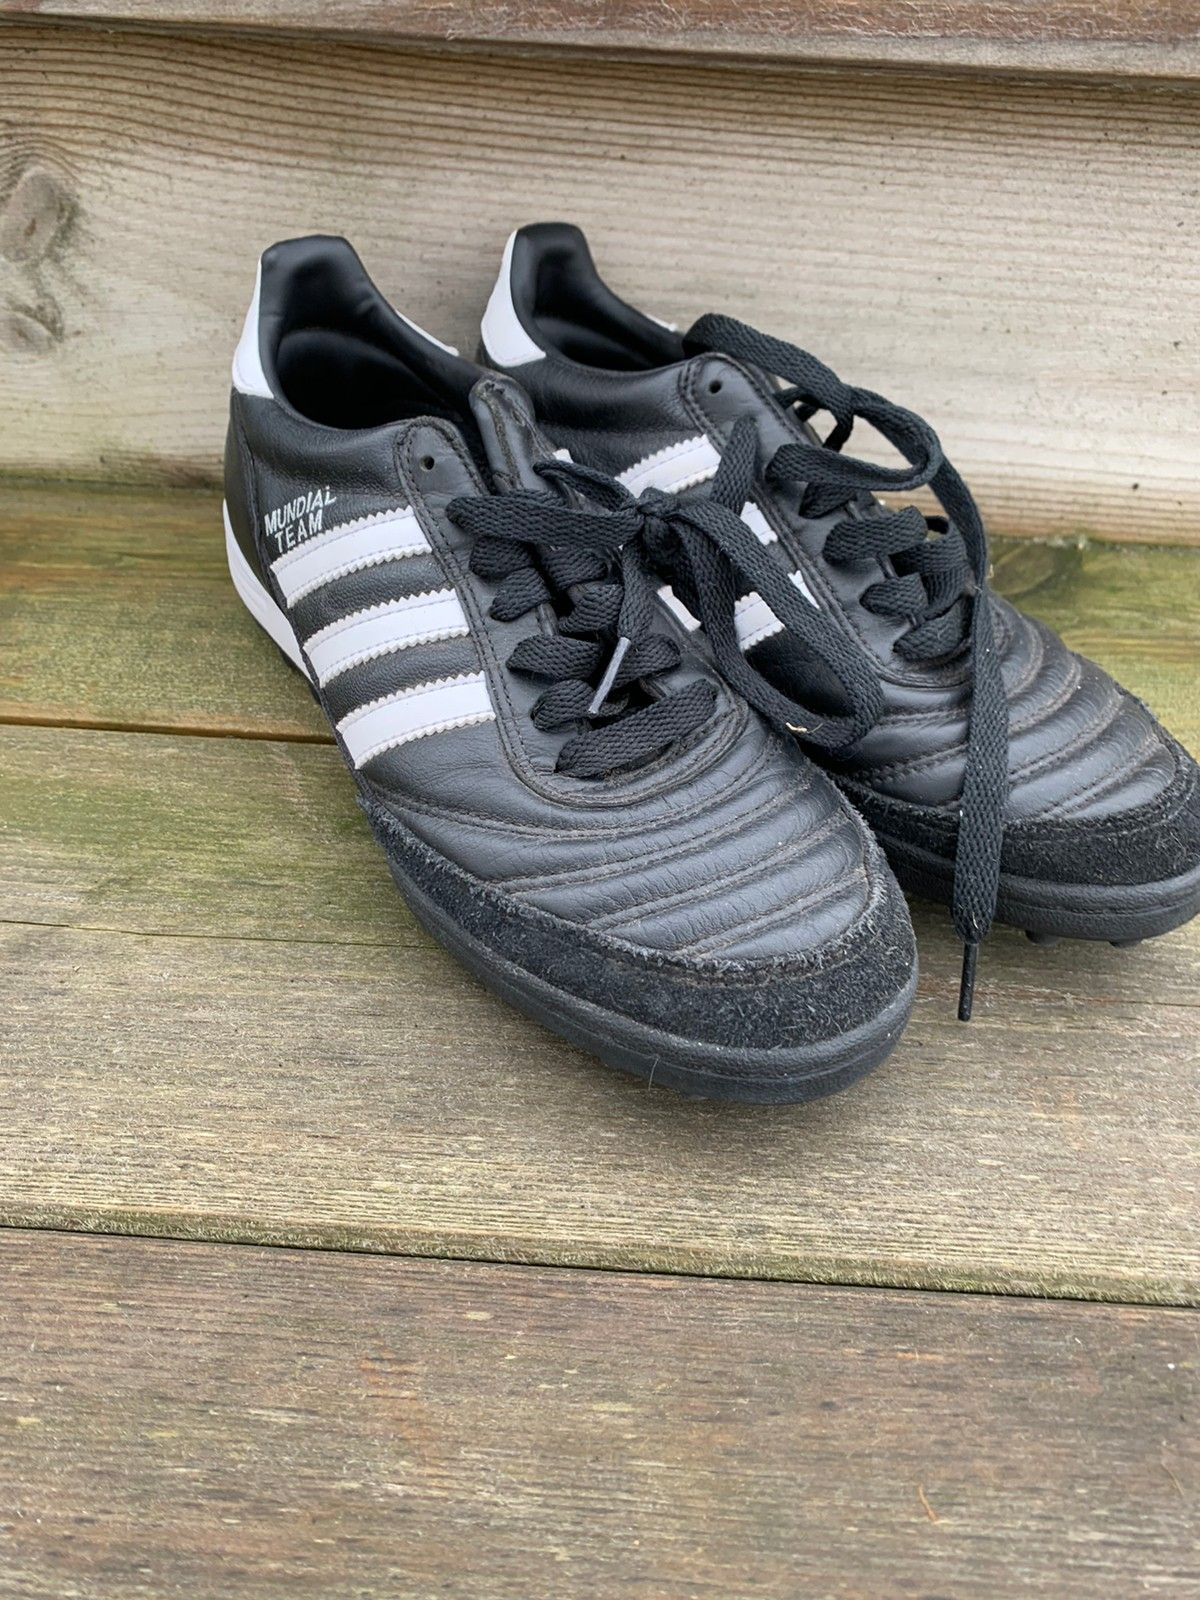 Adidas sko slitt men fine! Str 38 23! | FINN.no